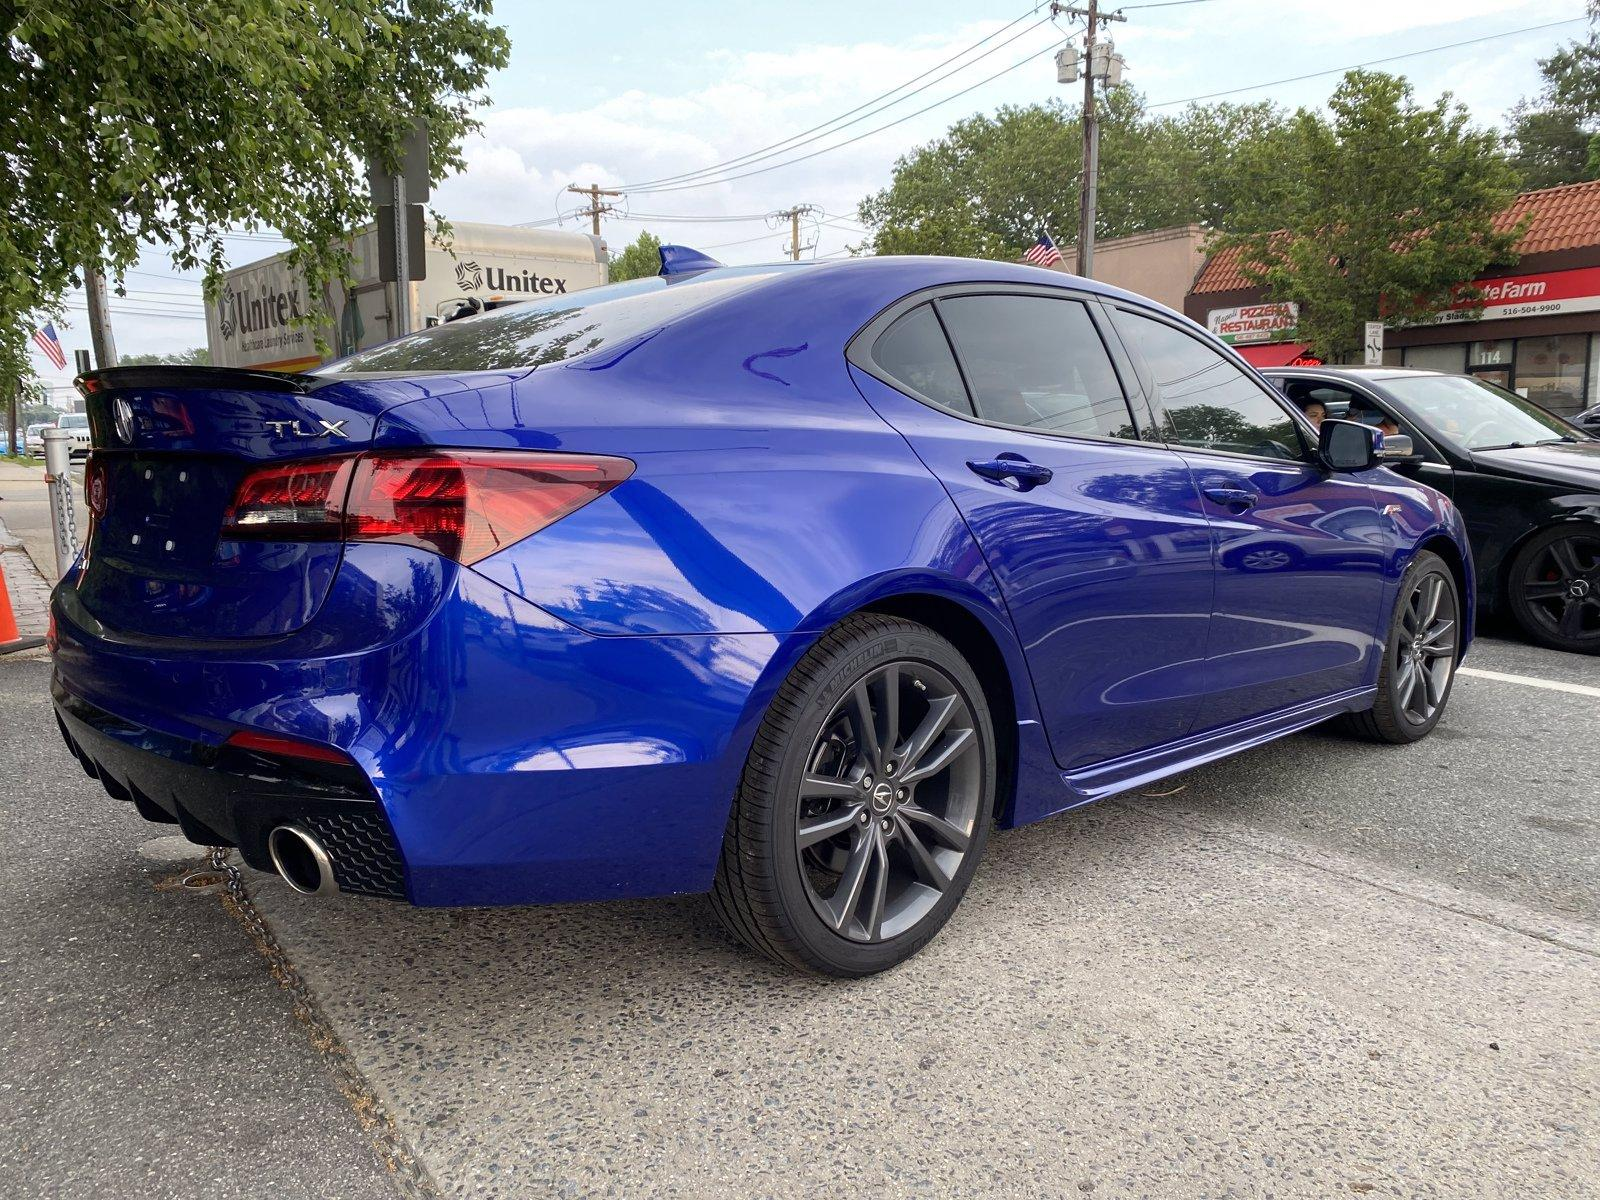 Used-2018-Acura-TLX-w/A-SPEC-Pkg